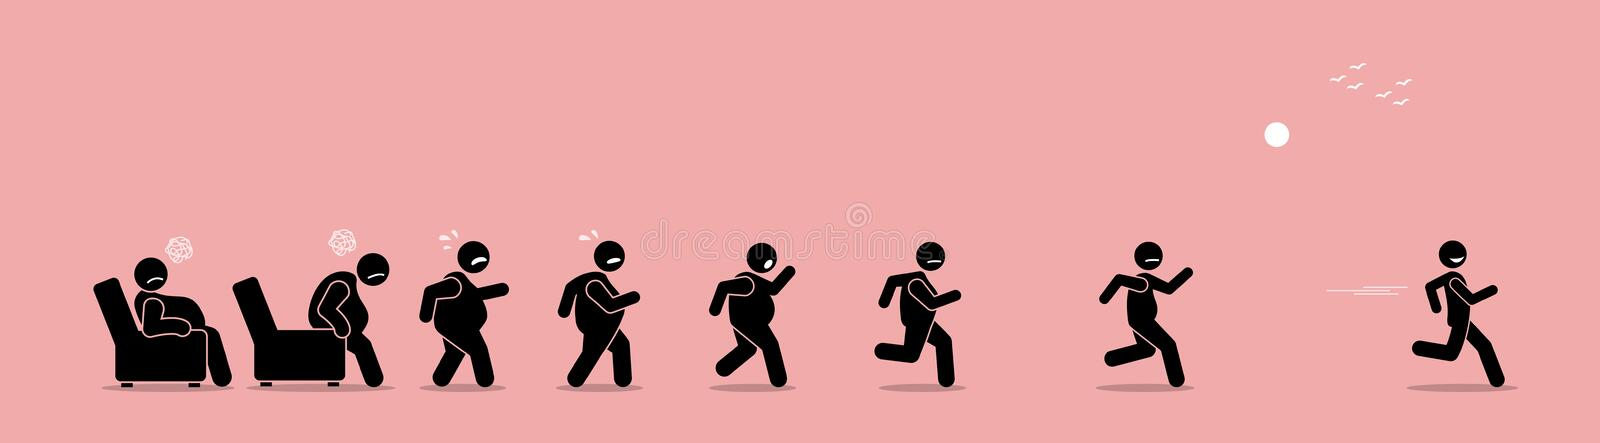 Fat man getting up, running, and become thin transformation. vector illustration